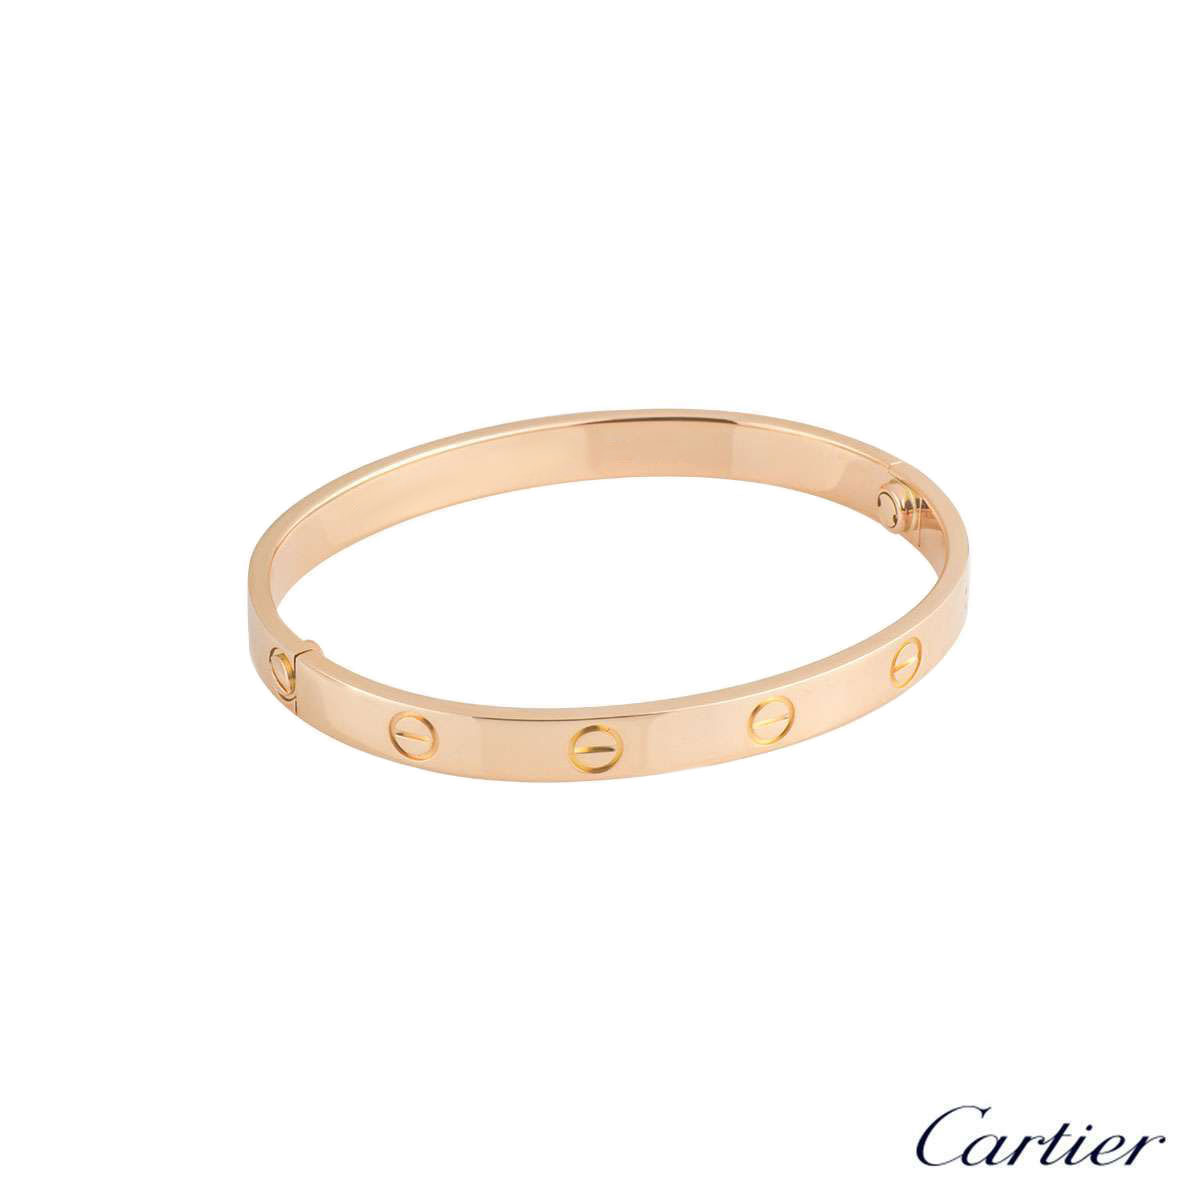 Cartier Rose Gold Plain Love Bracelet Size 16 B6035616